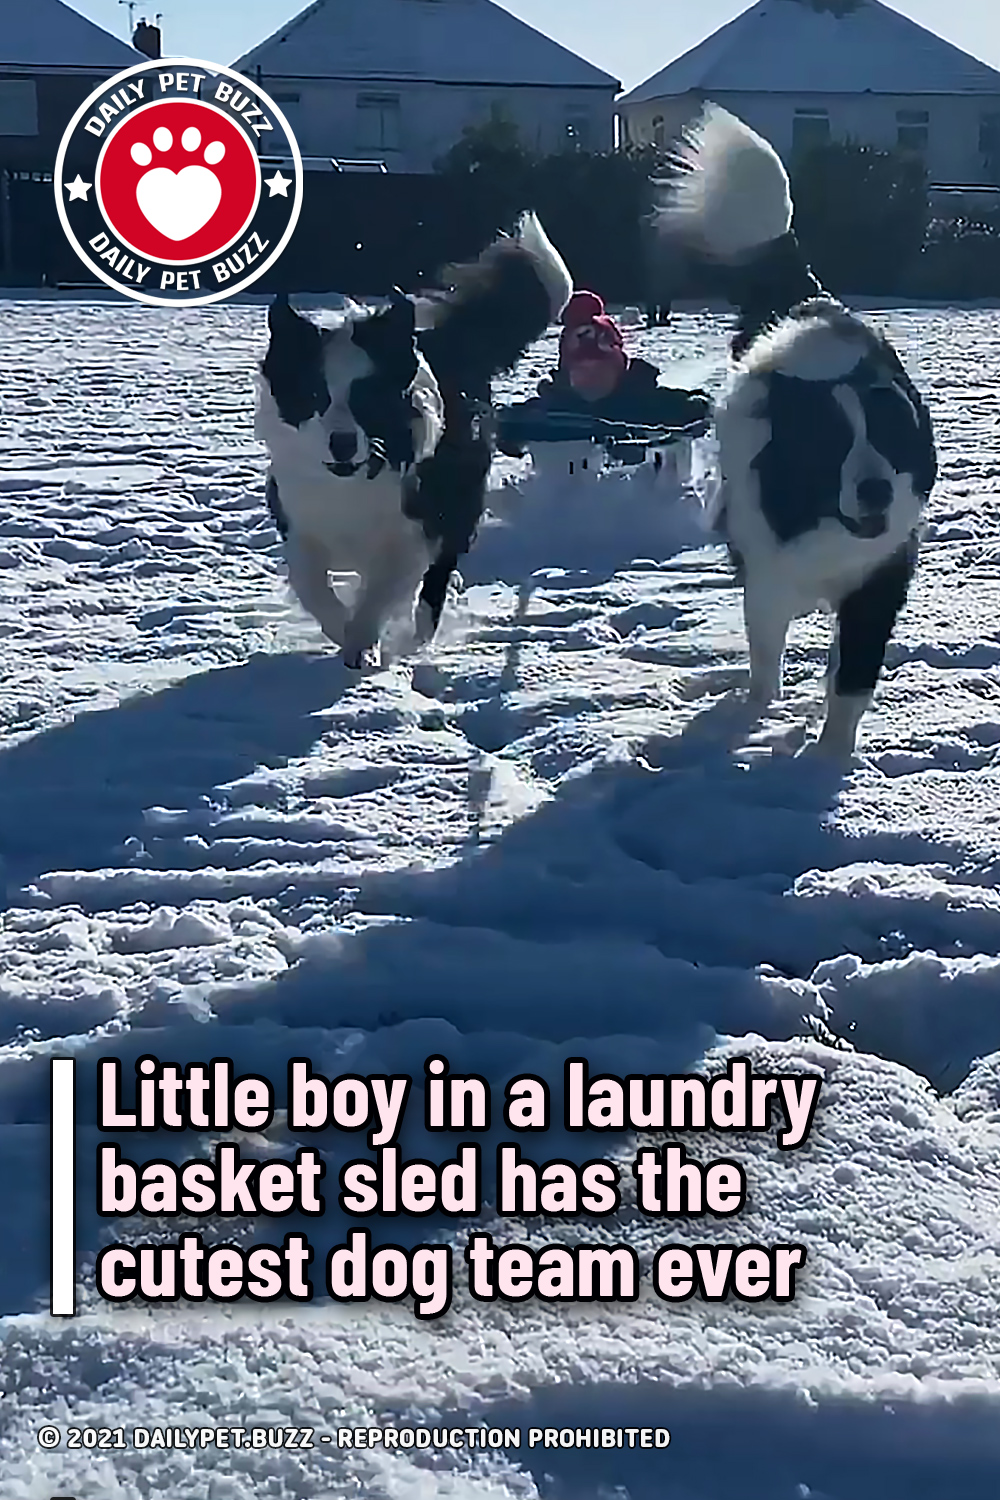 Little boy in a laundry basket sled has the cutest dog team ever